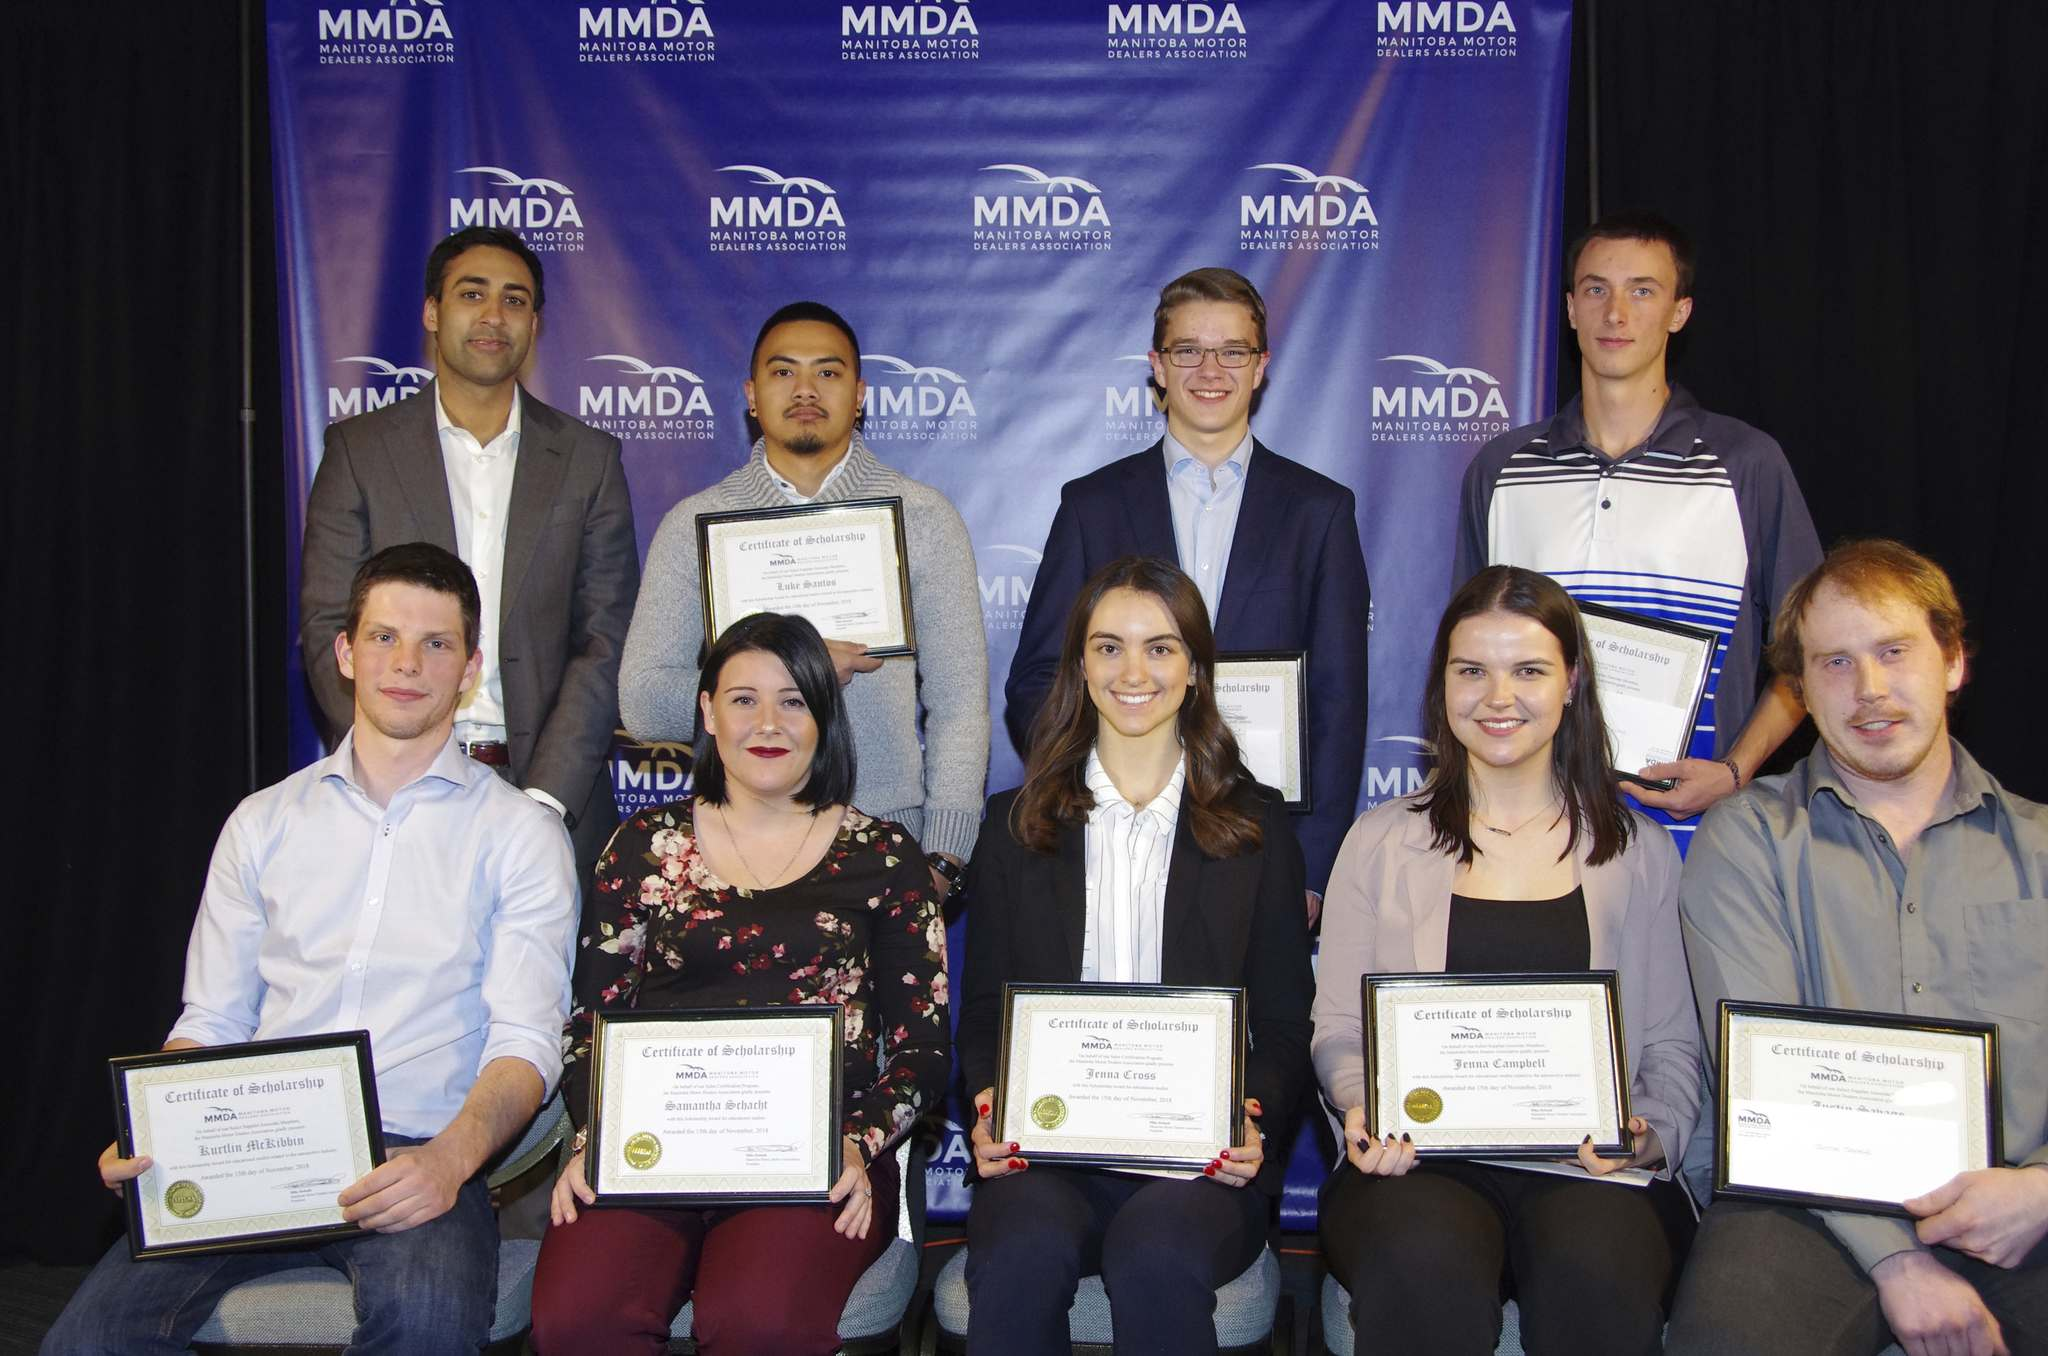 Submitted Kabeir Dilawri from the MMDA (back from left), with scholarship winners Luke Santos, Stephen Bachalo, Brett Metcalfe, (front from left)Kurtlin McKibbin, Samantha Schacht, Jenna Cross, Jenna Campbell and Justin Savage.